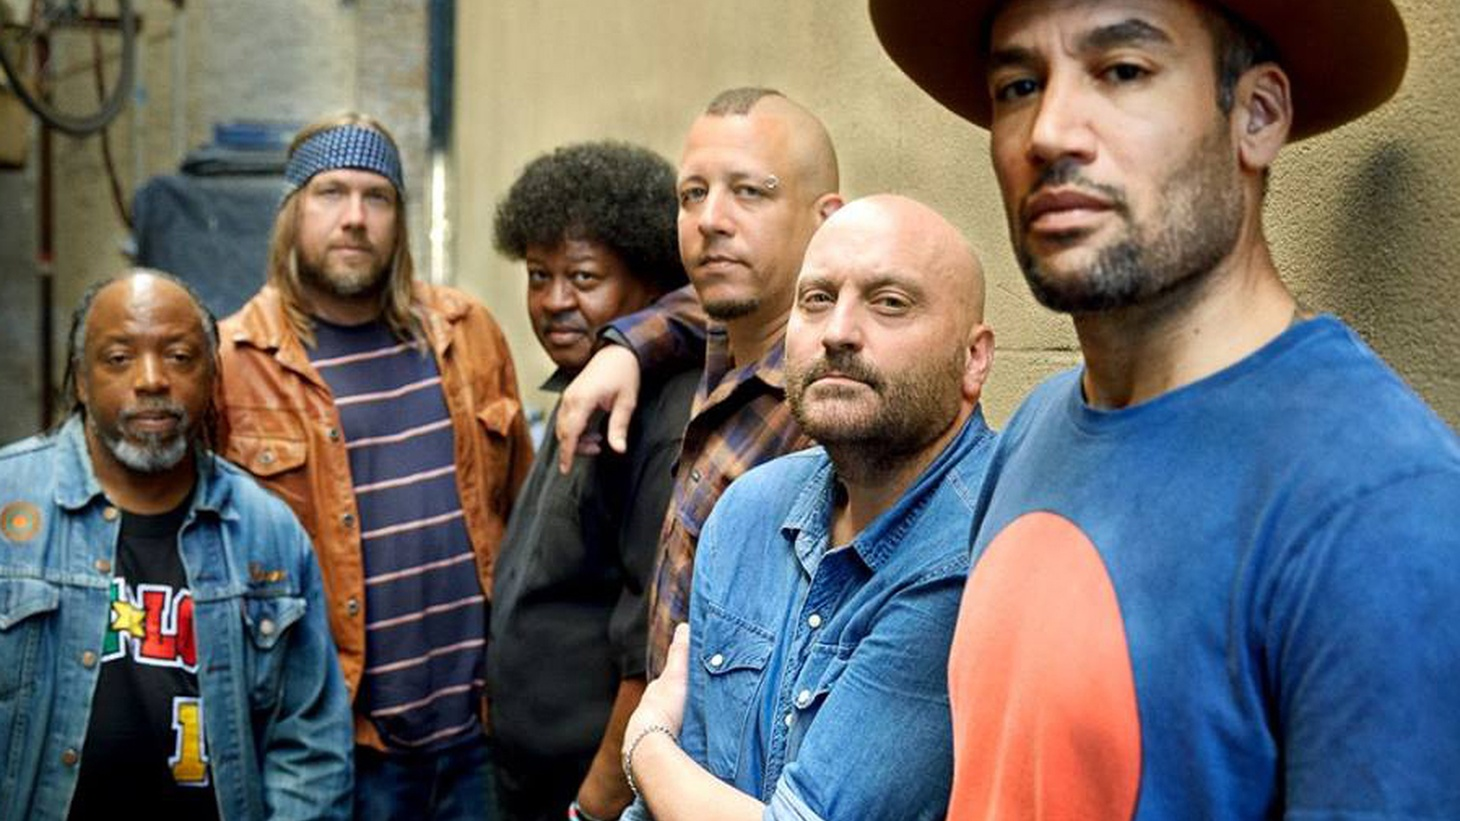 After a nine year hiatus Ben Harper & the Innocent Criminals have a new collection of songs, blending the political and personal in their inimitable bold style.